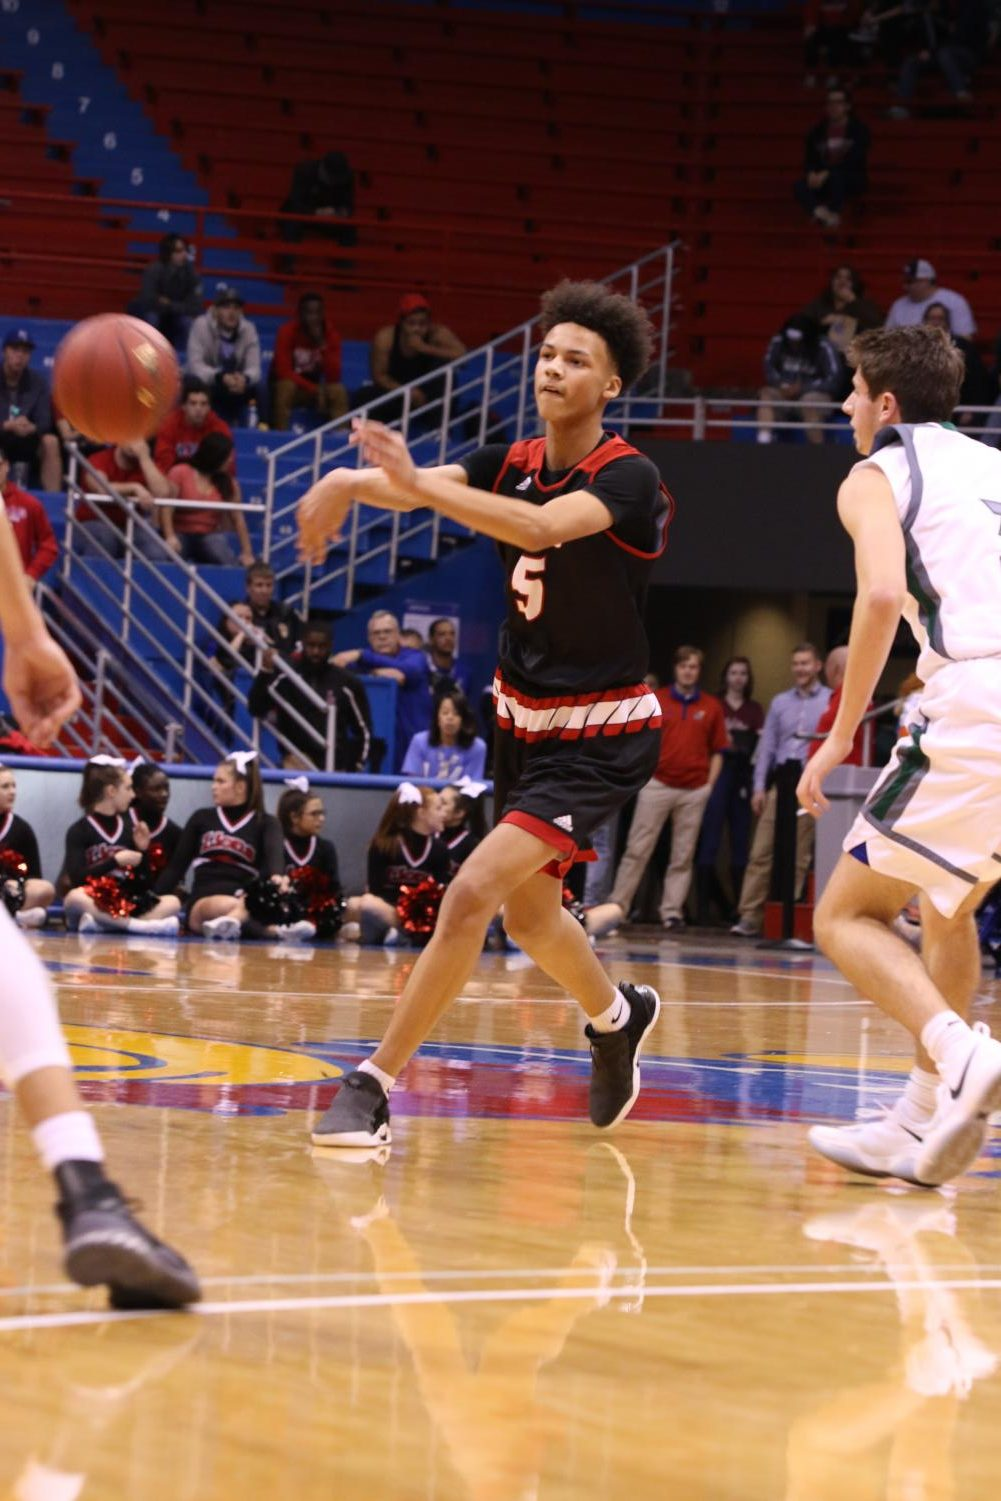 Freshman Zeke Mayo sprays it out to a teammate on Friday night vs. Free State at Allen Fieldhouse. Mayo would finish with 7 points.